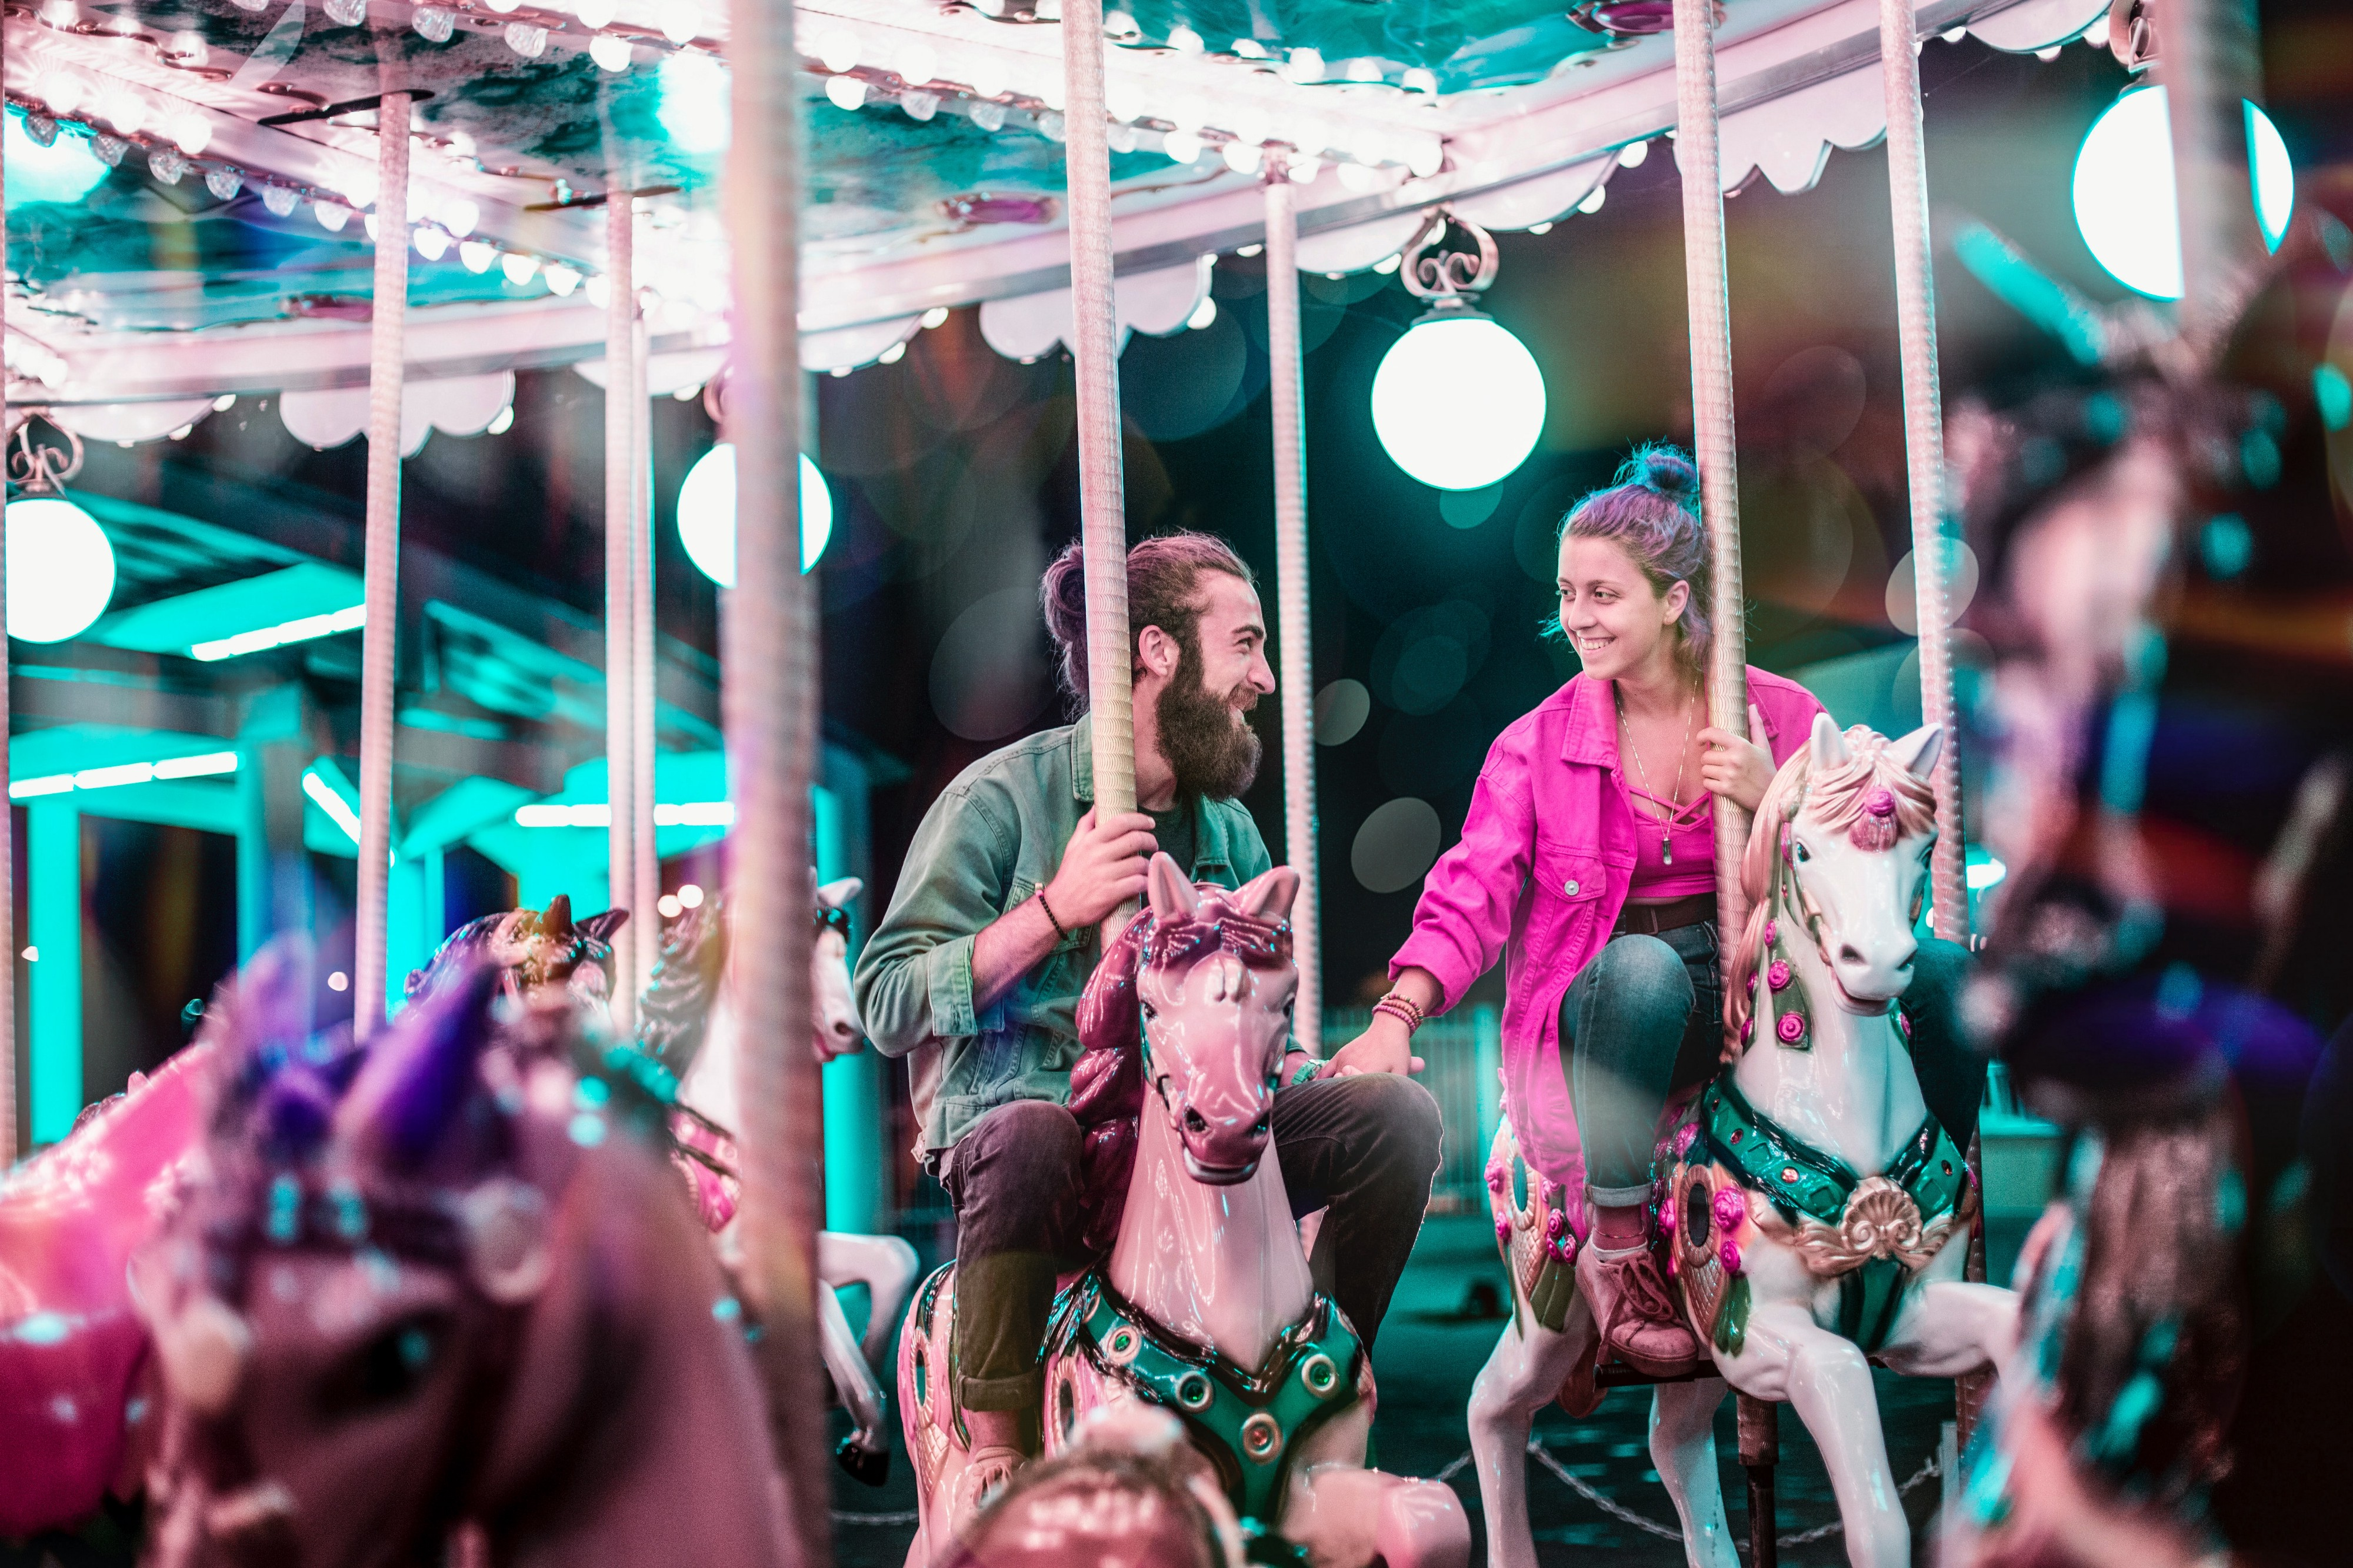 Two people riding a carousel and smiling at each other